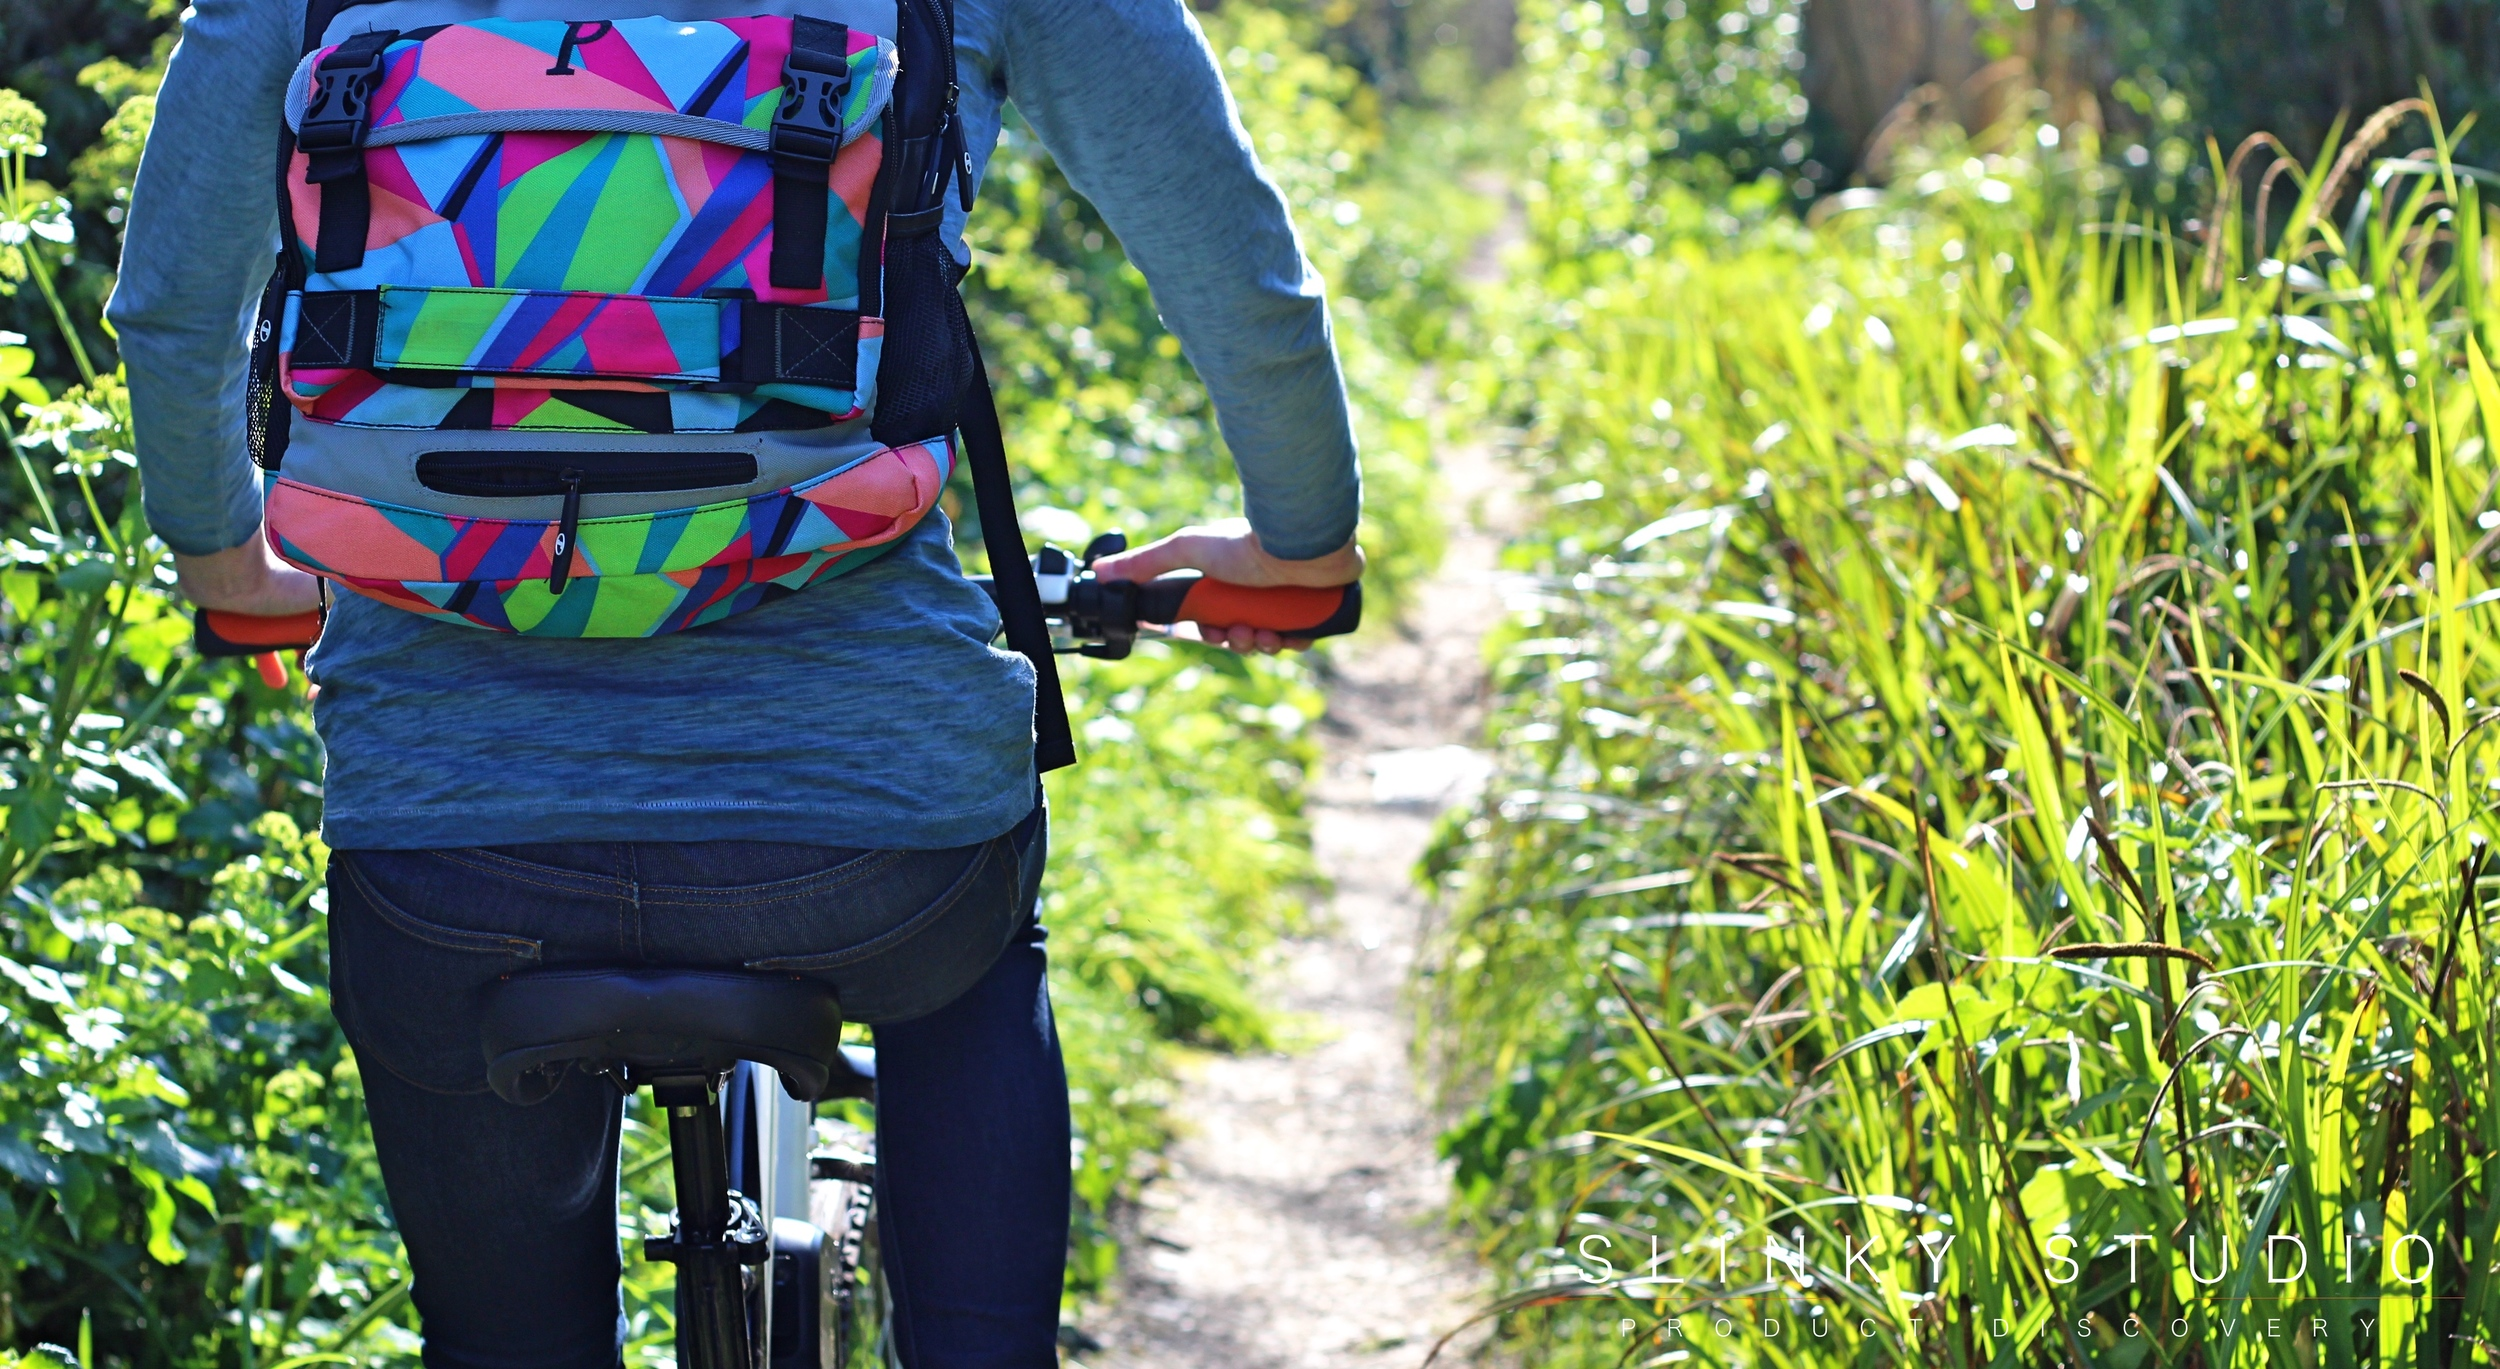 Cyclotricity Stealth eBike Riding Through Dirt Path Off Road Sunny Day Cornwall.jpg